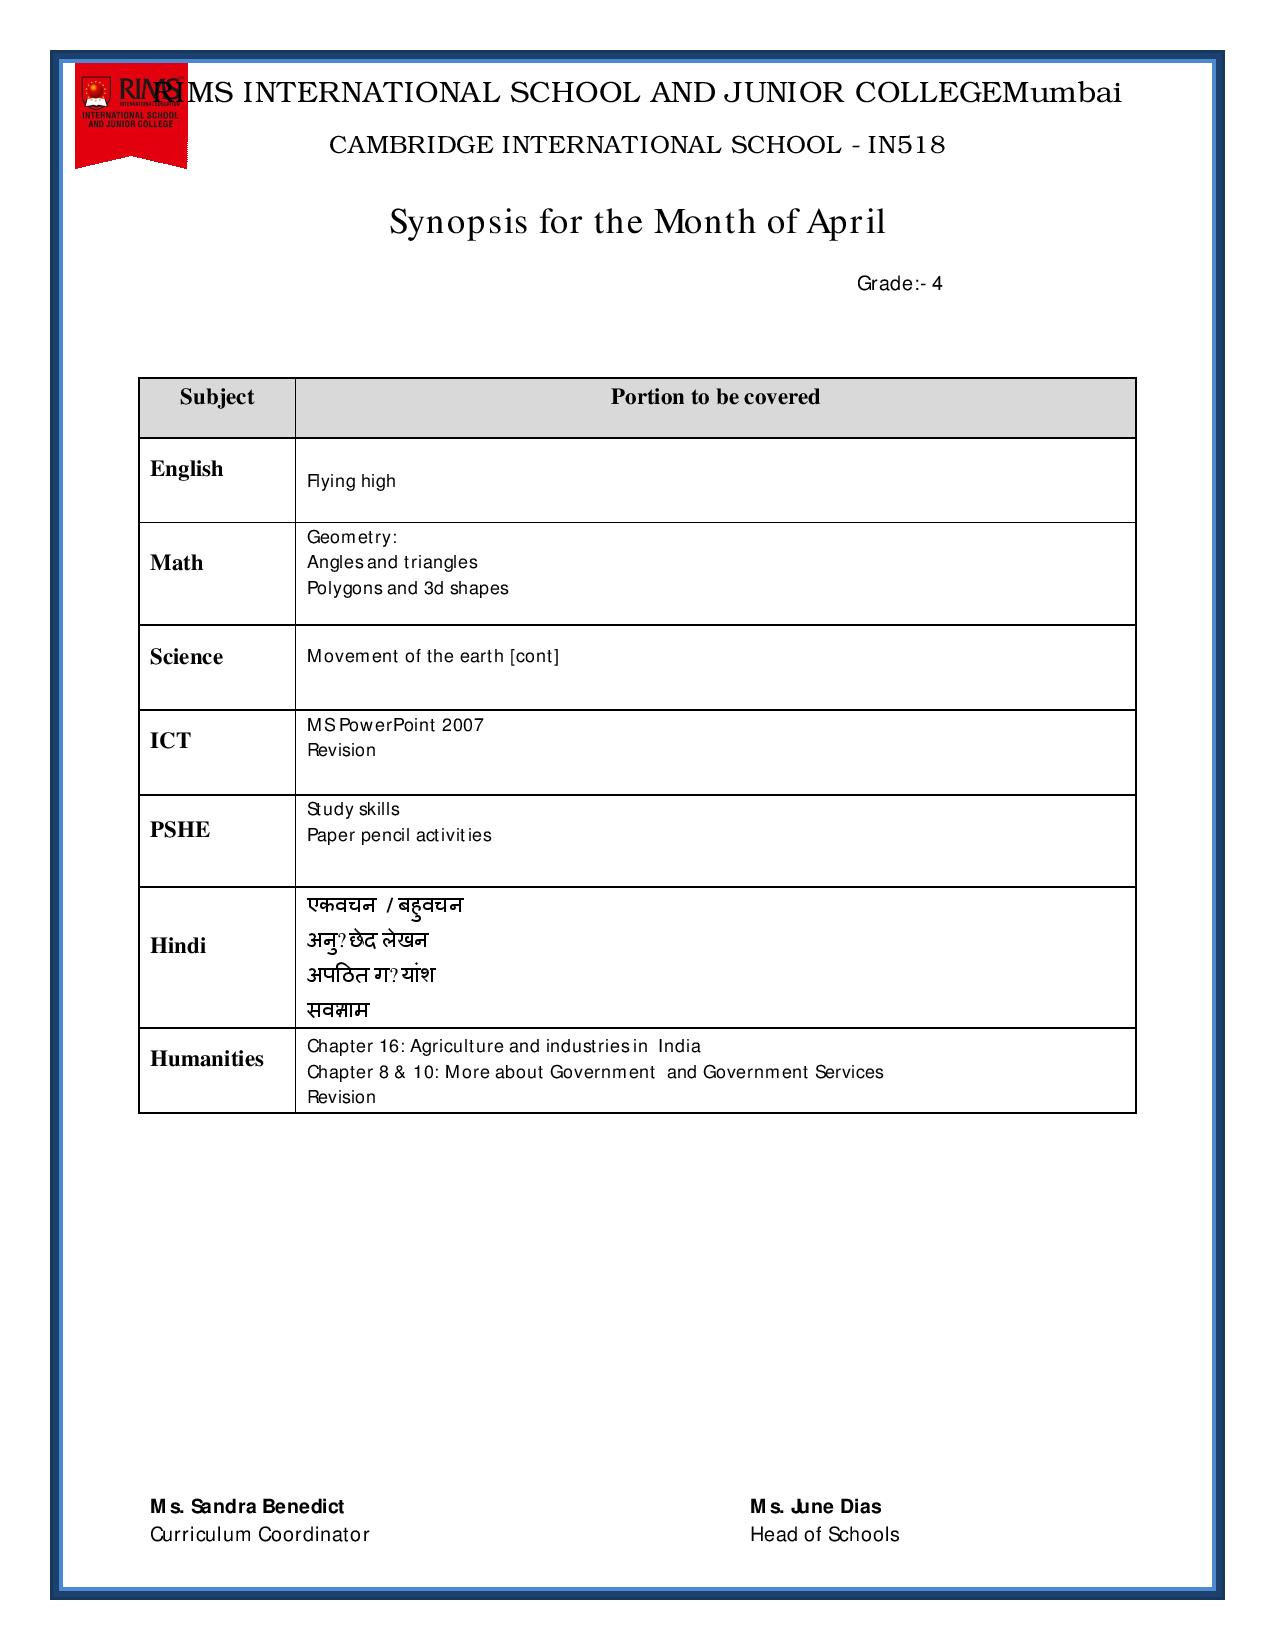 Synopsis for the Month of April - Grade 4